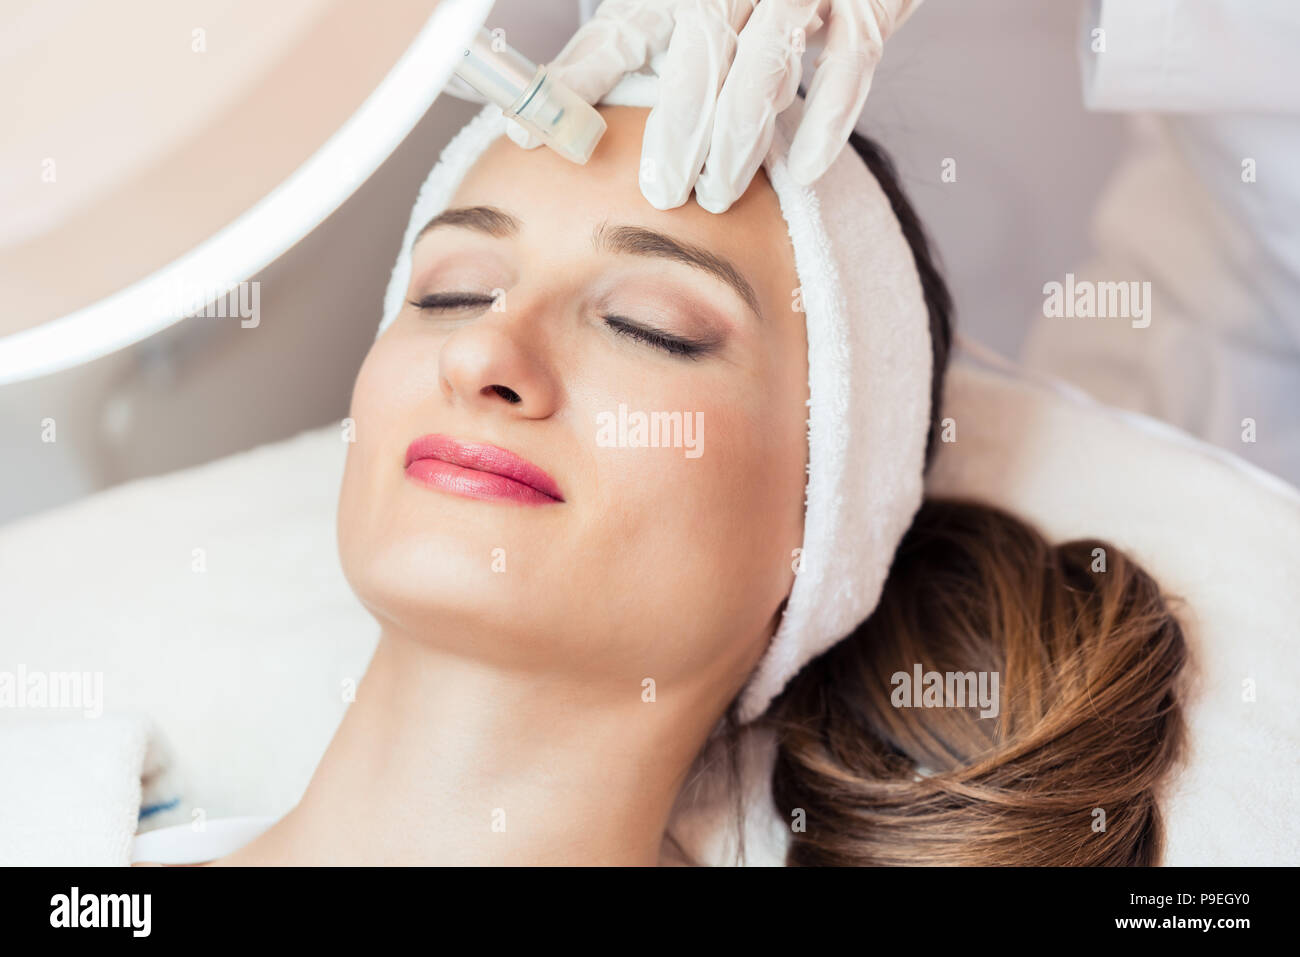 Close-up of the face of a woman relaxing during non-surgical facial treatment Stock Photo